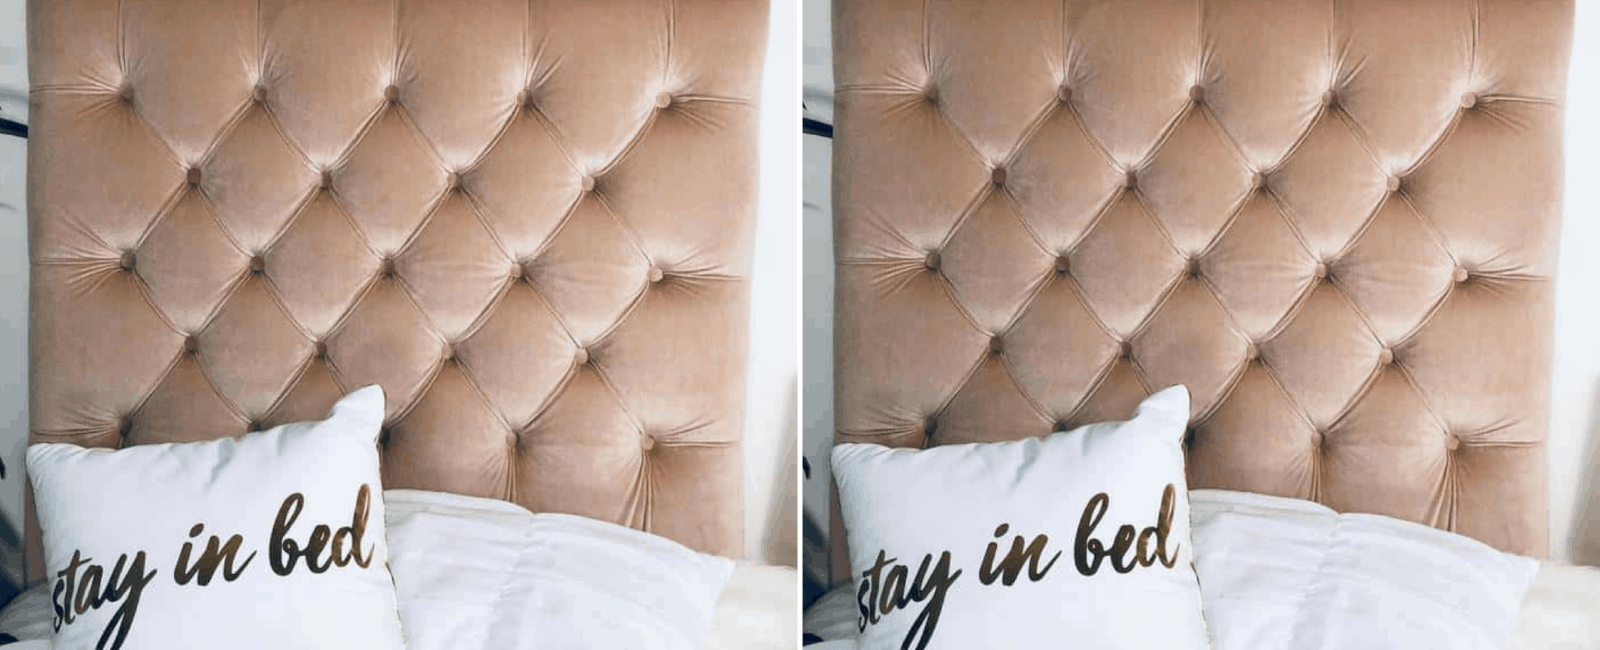 Best Dorm Bed Headboard | 21 Insanely Cute Dorm Bed Headboards To Use This Year